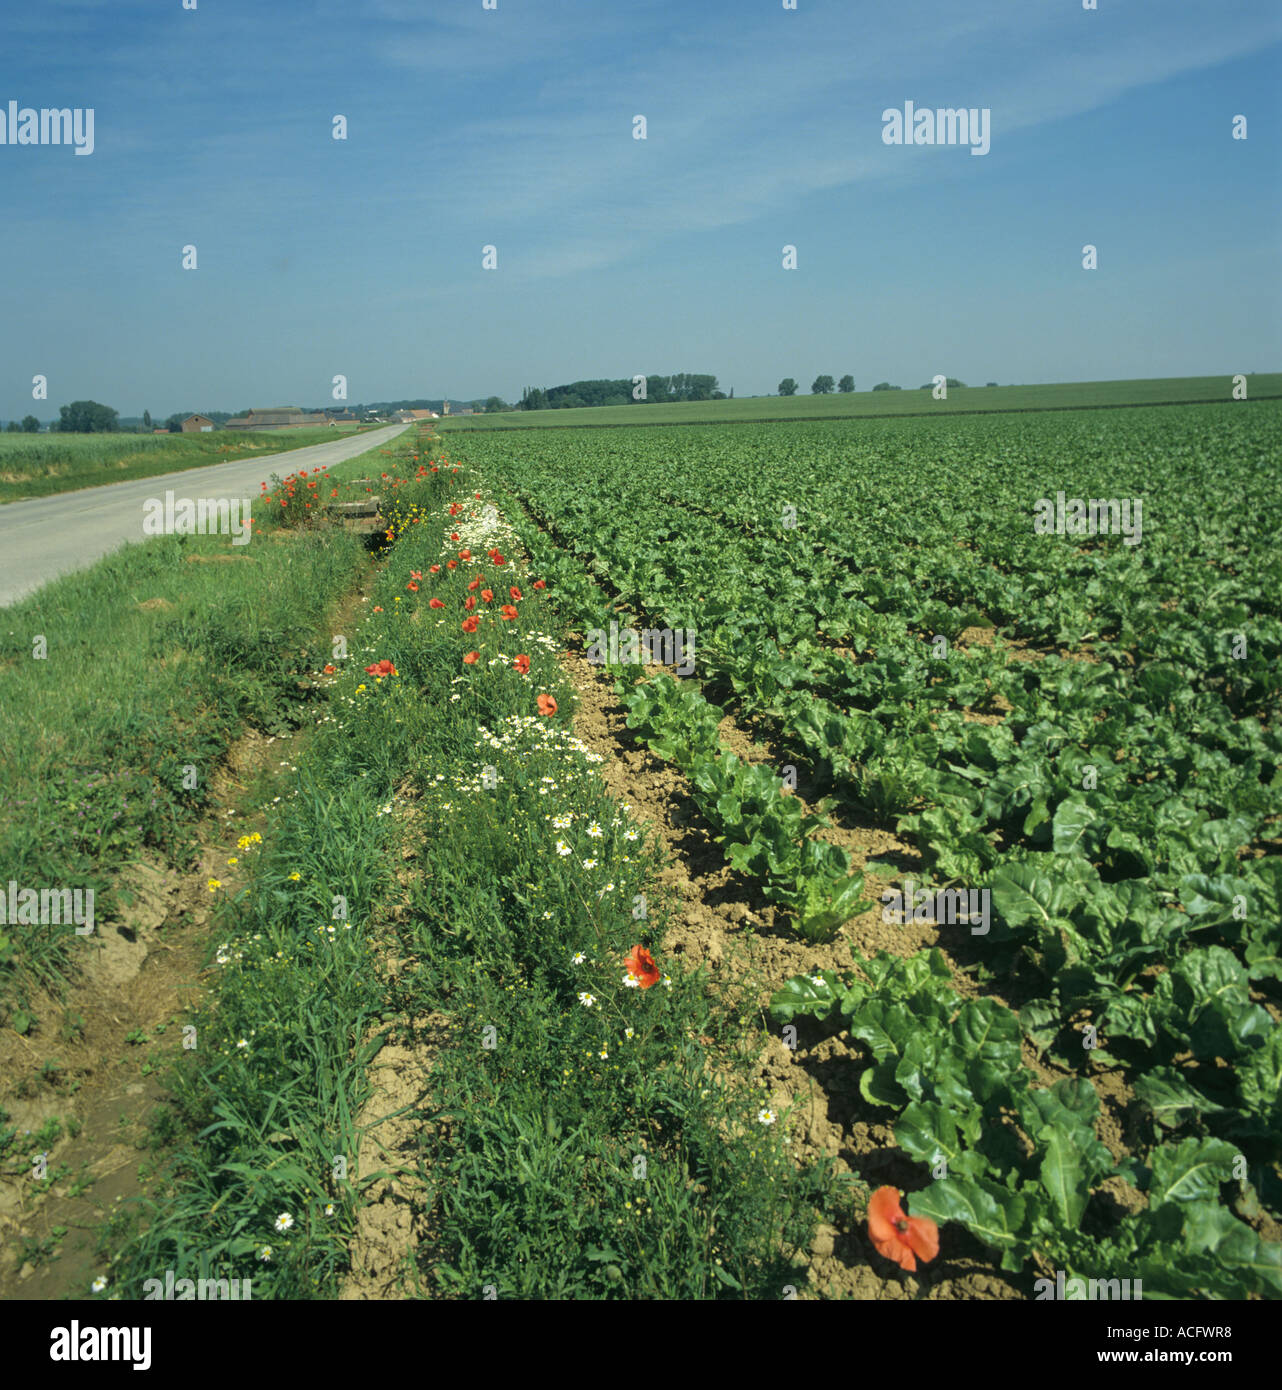 A roadside verge with flowering plants in an unsprayed strip by a sugar beet field in Belgium - Stock Image